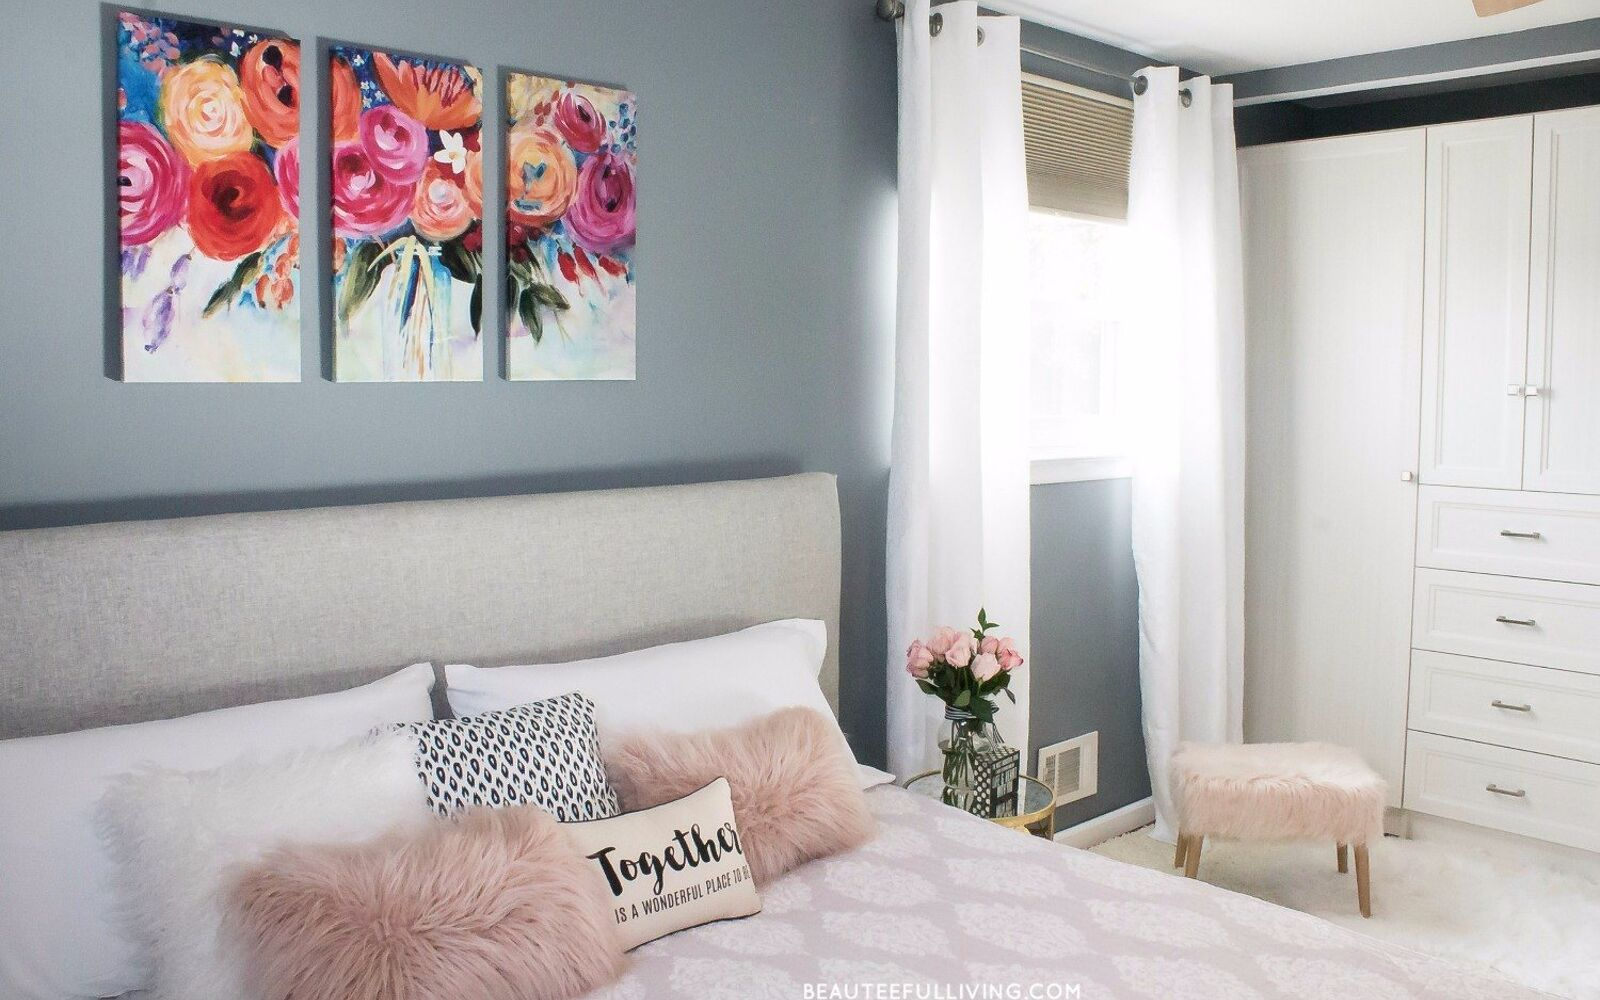 s 15 makeovers that will make you rethink your bedroom, Add Glamour With A Gold Accented Theme